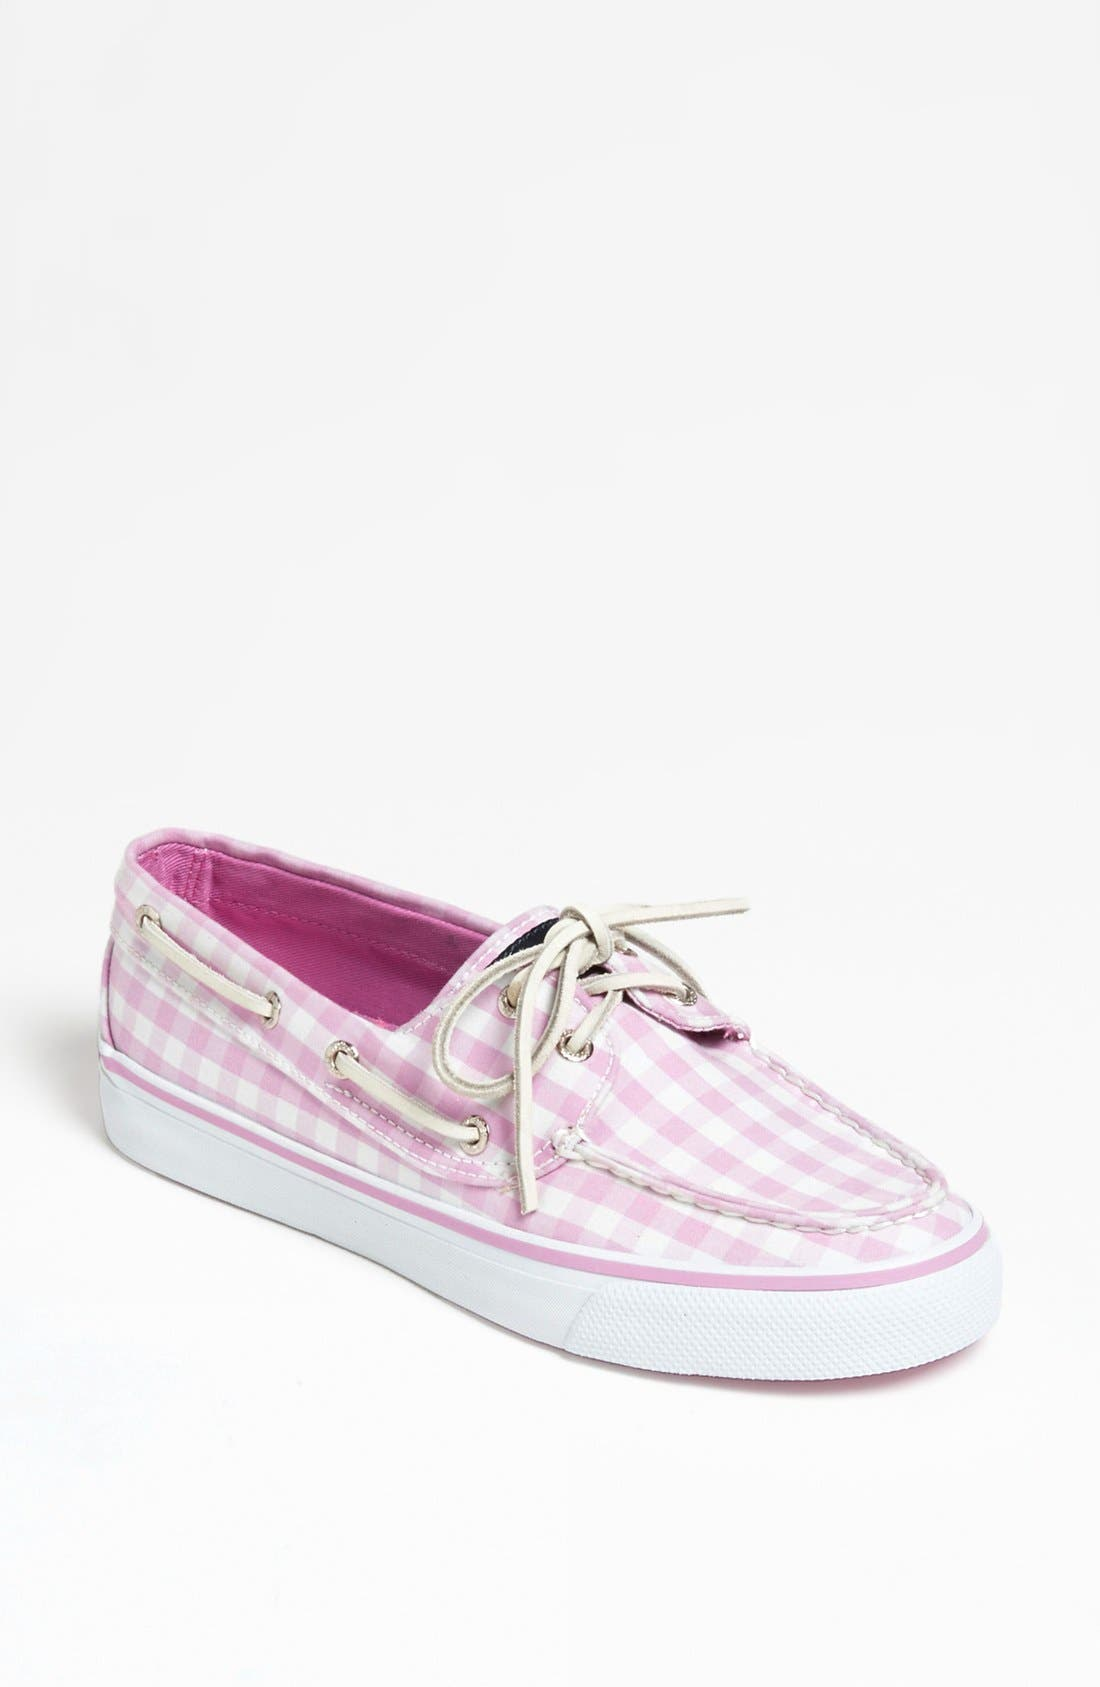 Alternate Image 1 Selected - Sperry Top-Sider® 'Bahama' Boat Shoe (Online Only)